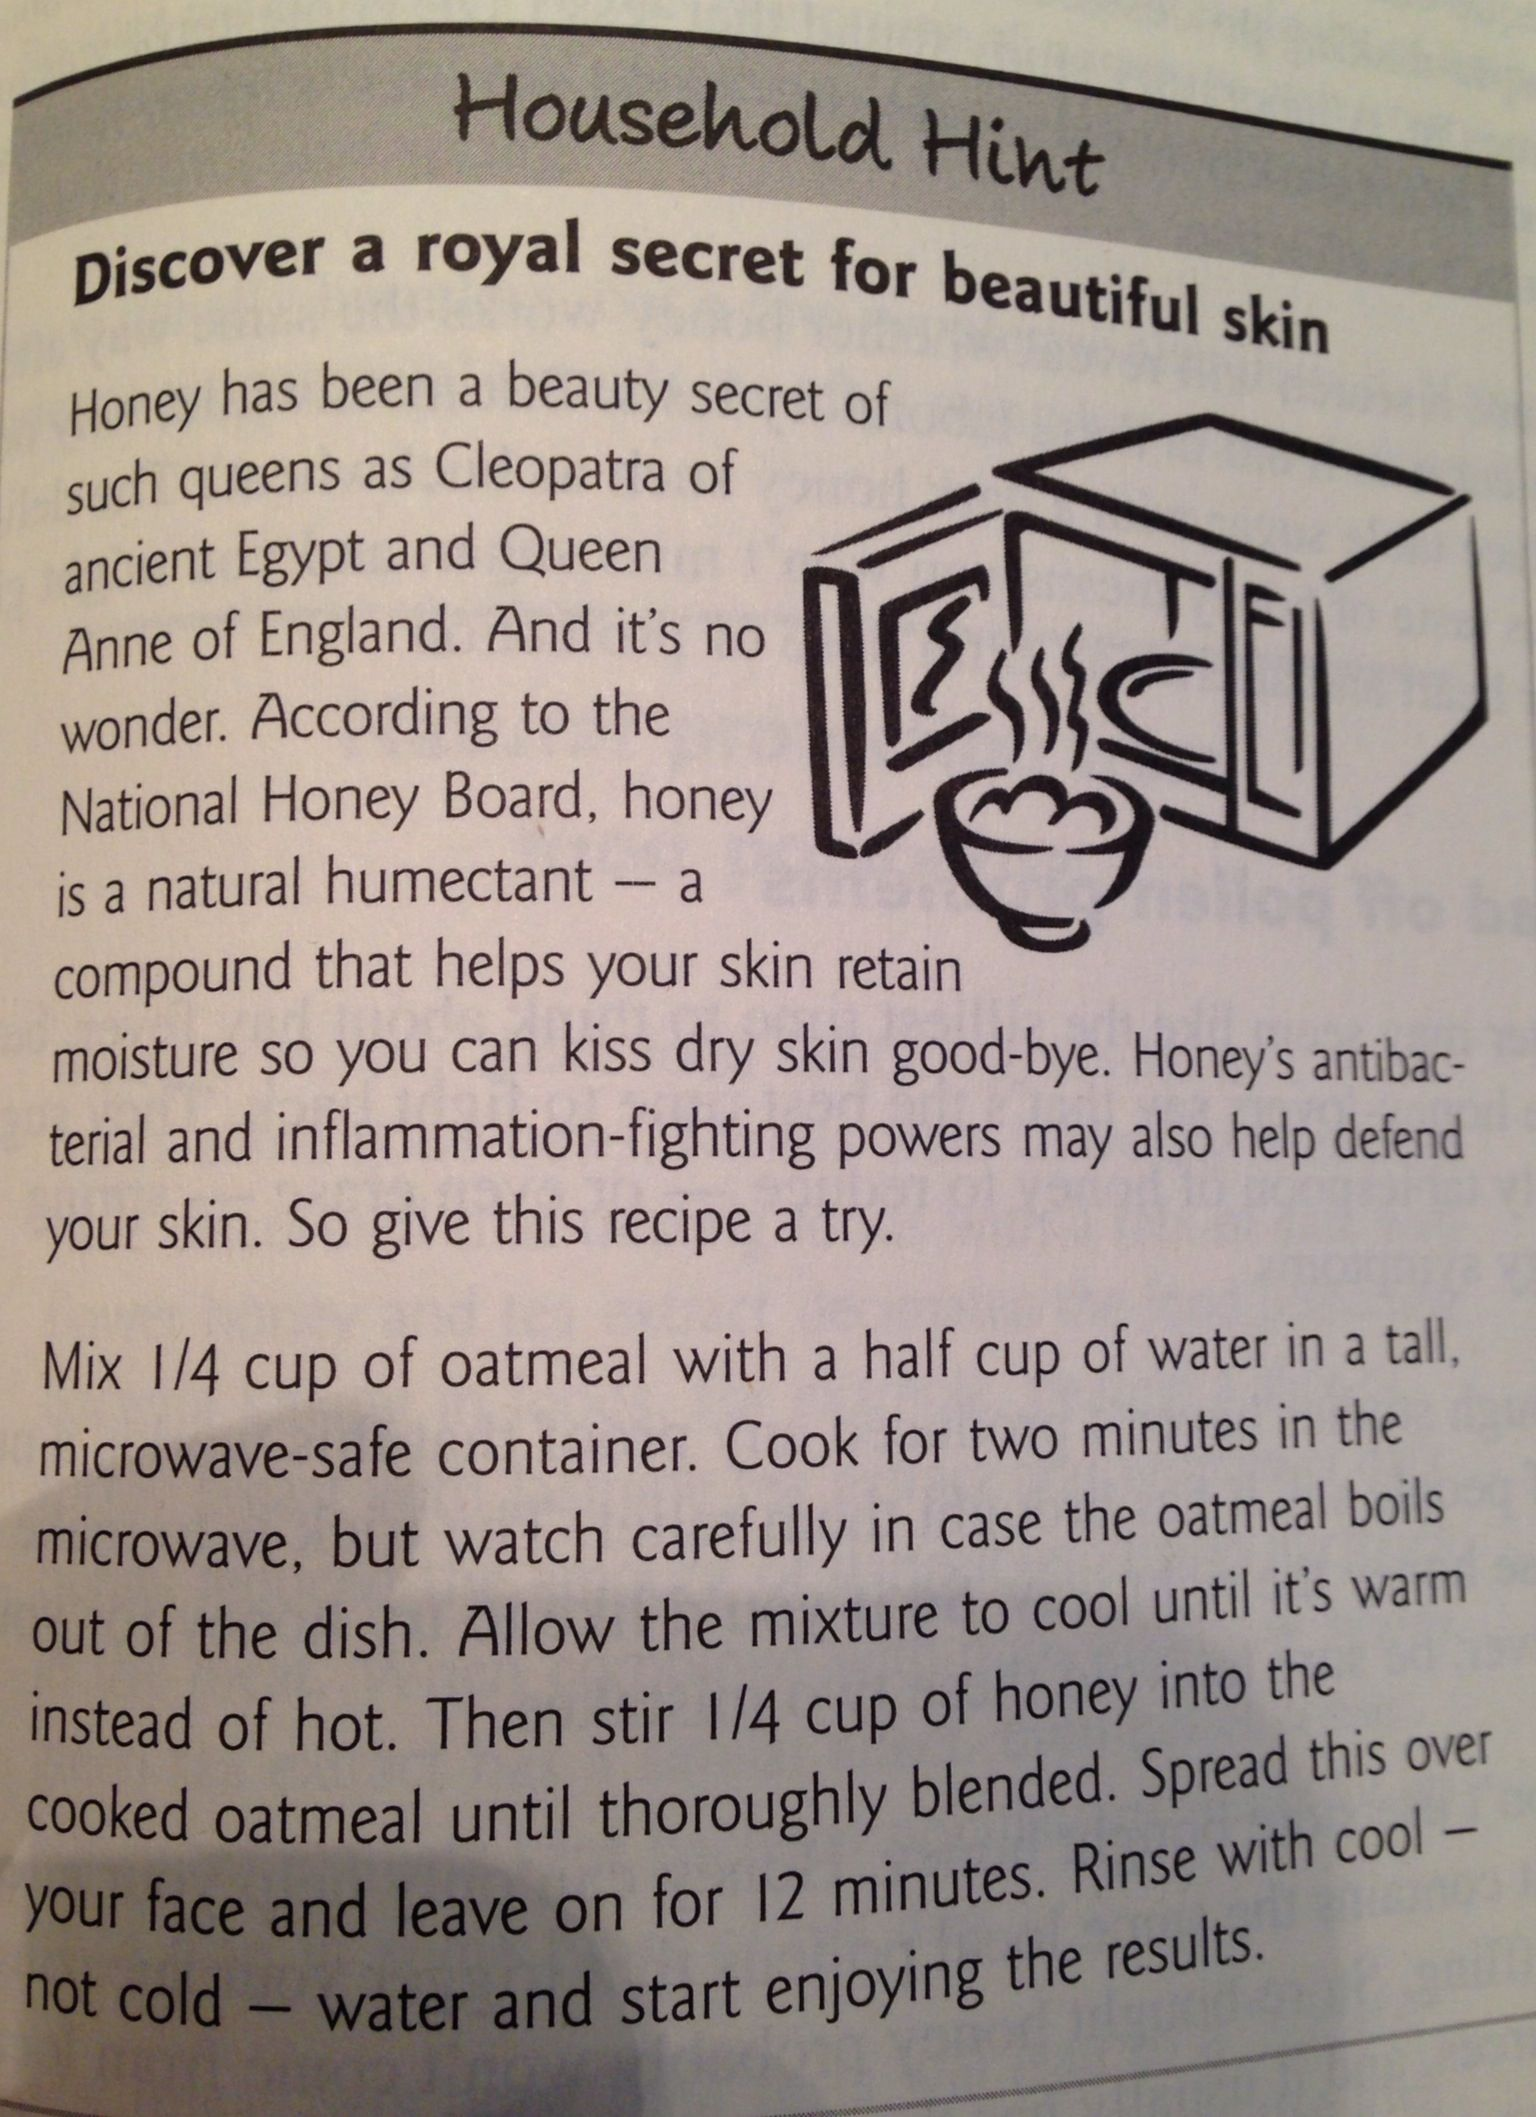 royal secret for beautiful skin - kitchen table book   beauty tips